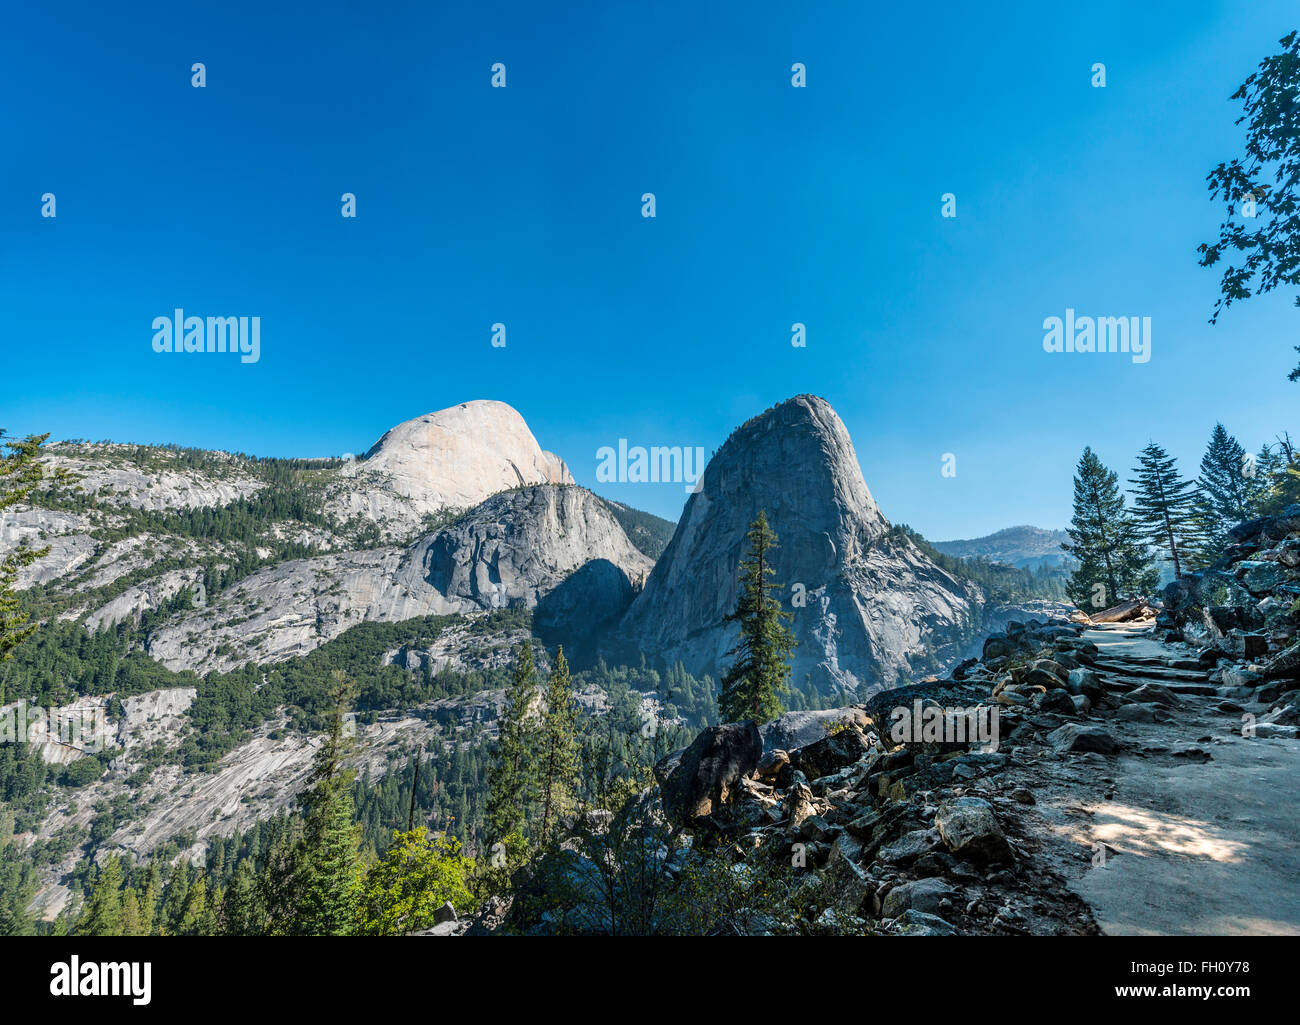 Liberty Cap, Yosemite National Park, California, USA, North America - Stock Image